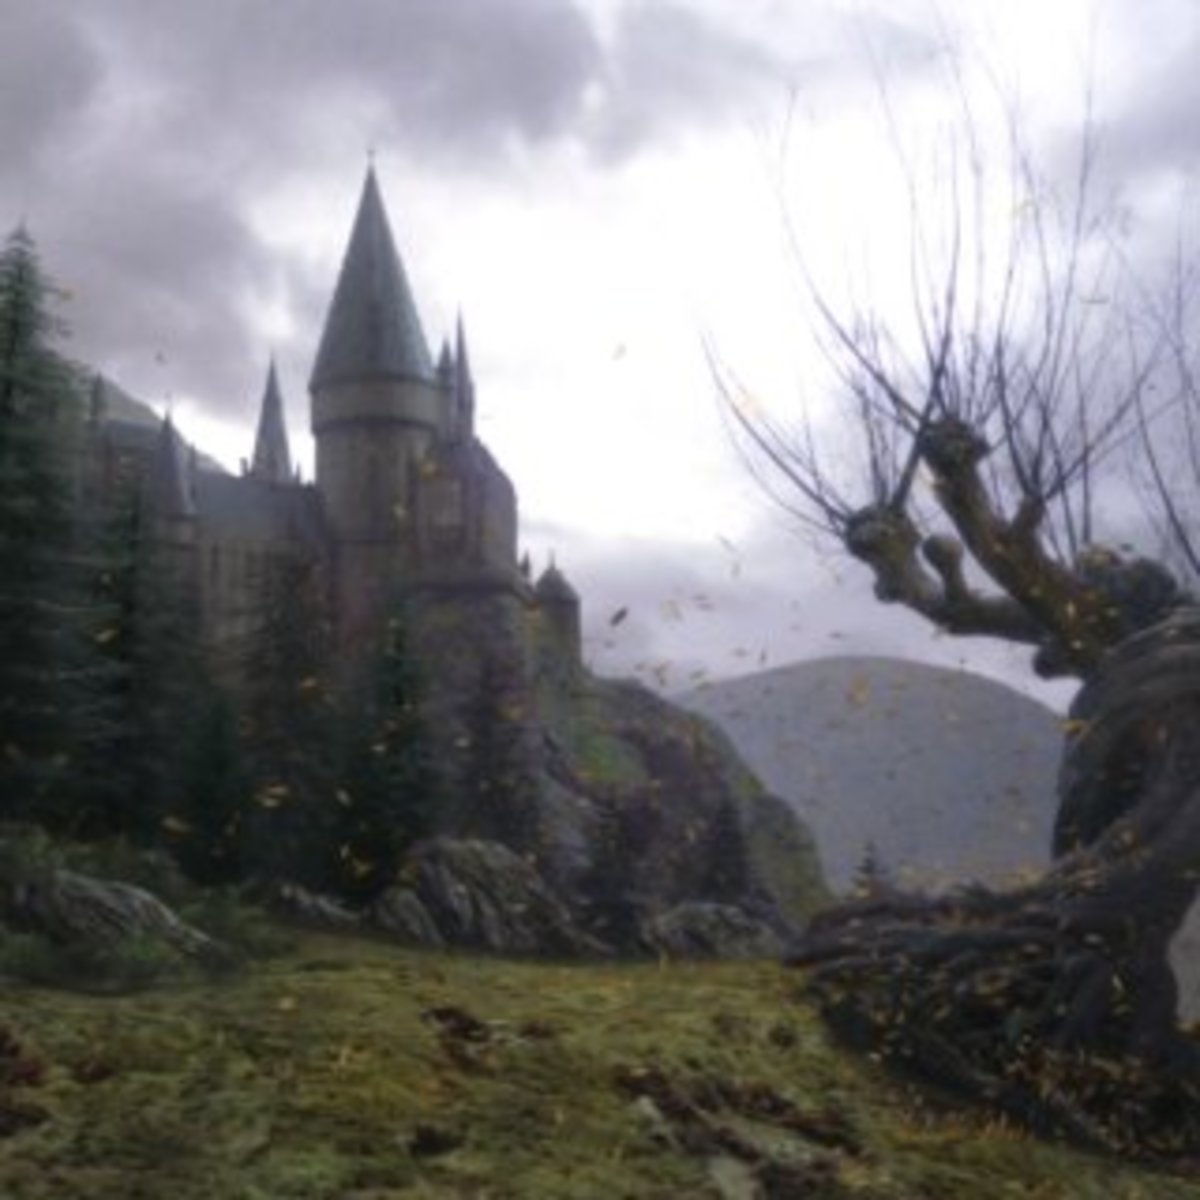 Have you ever wondered what it might be like to teach at Hogwarts?